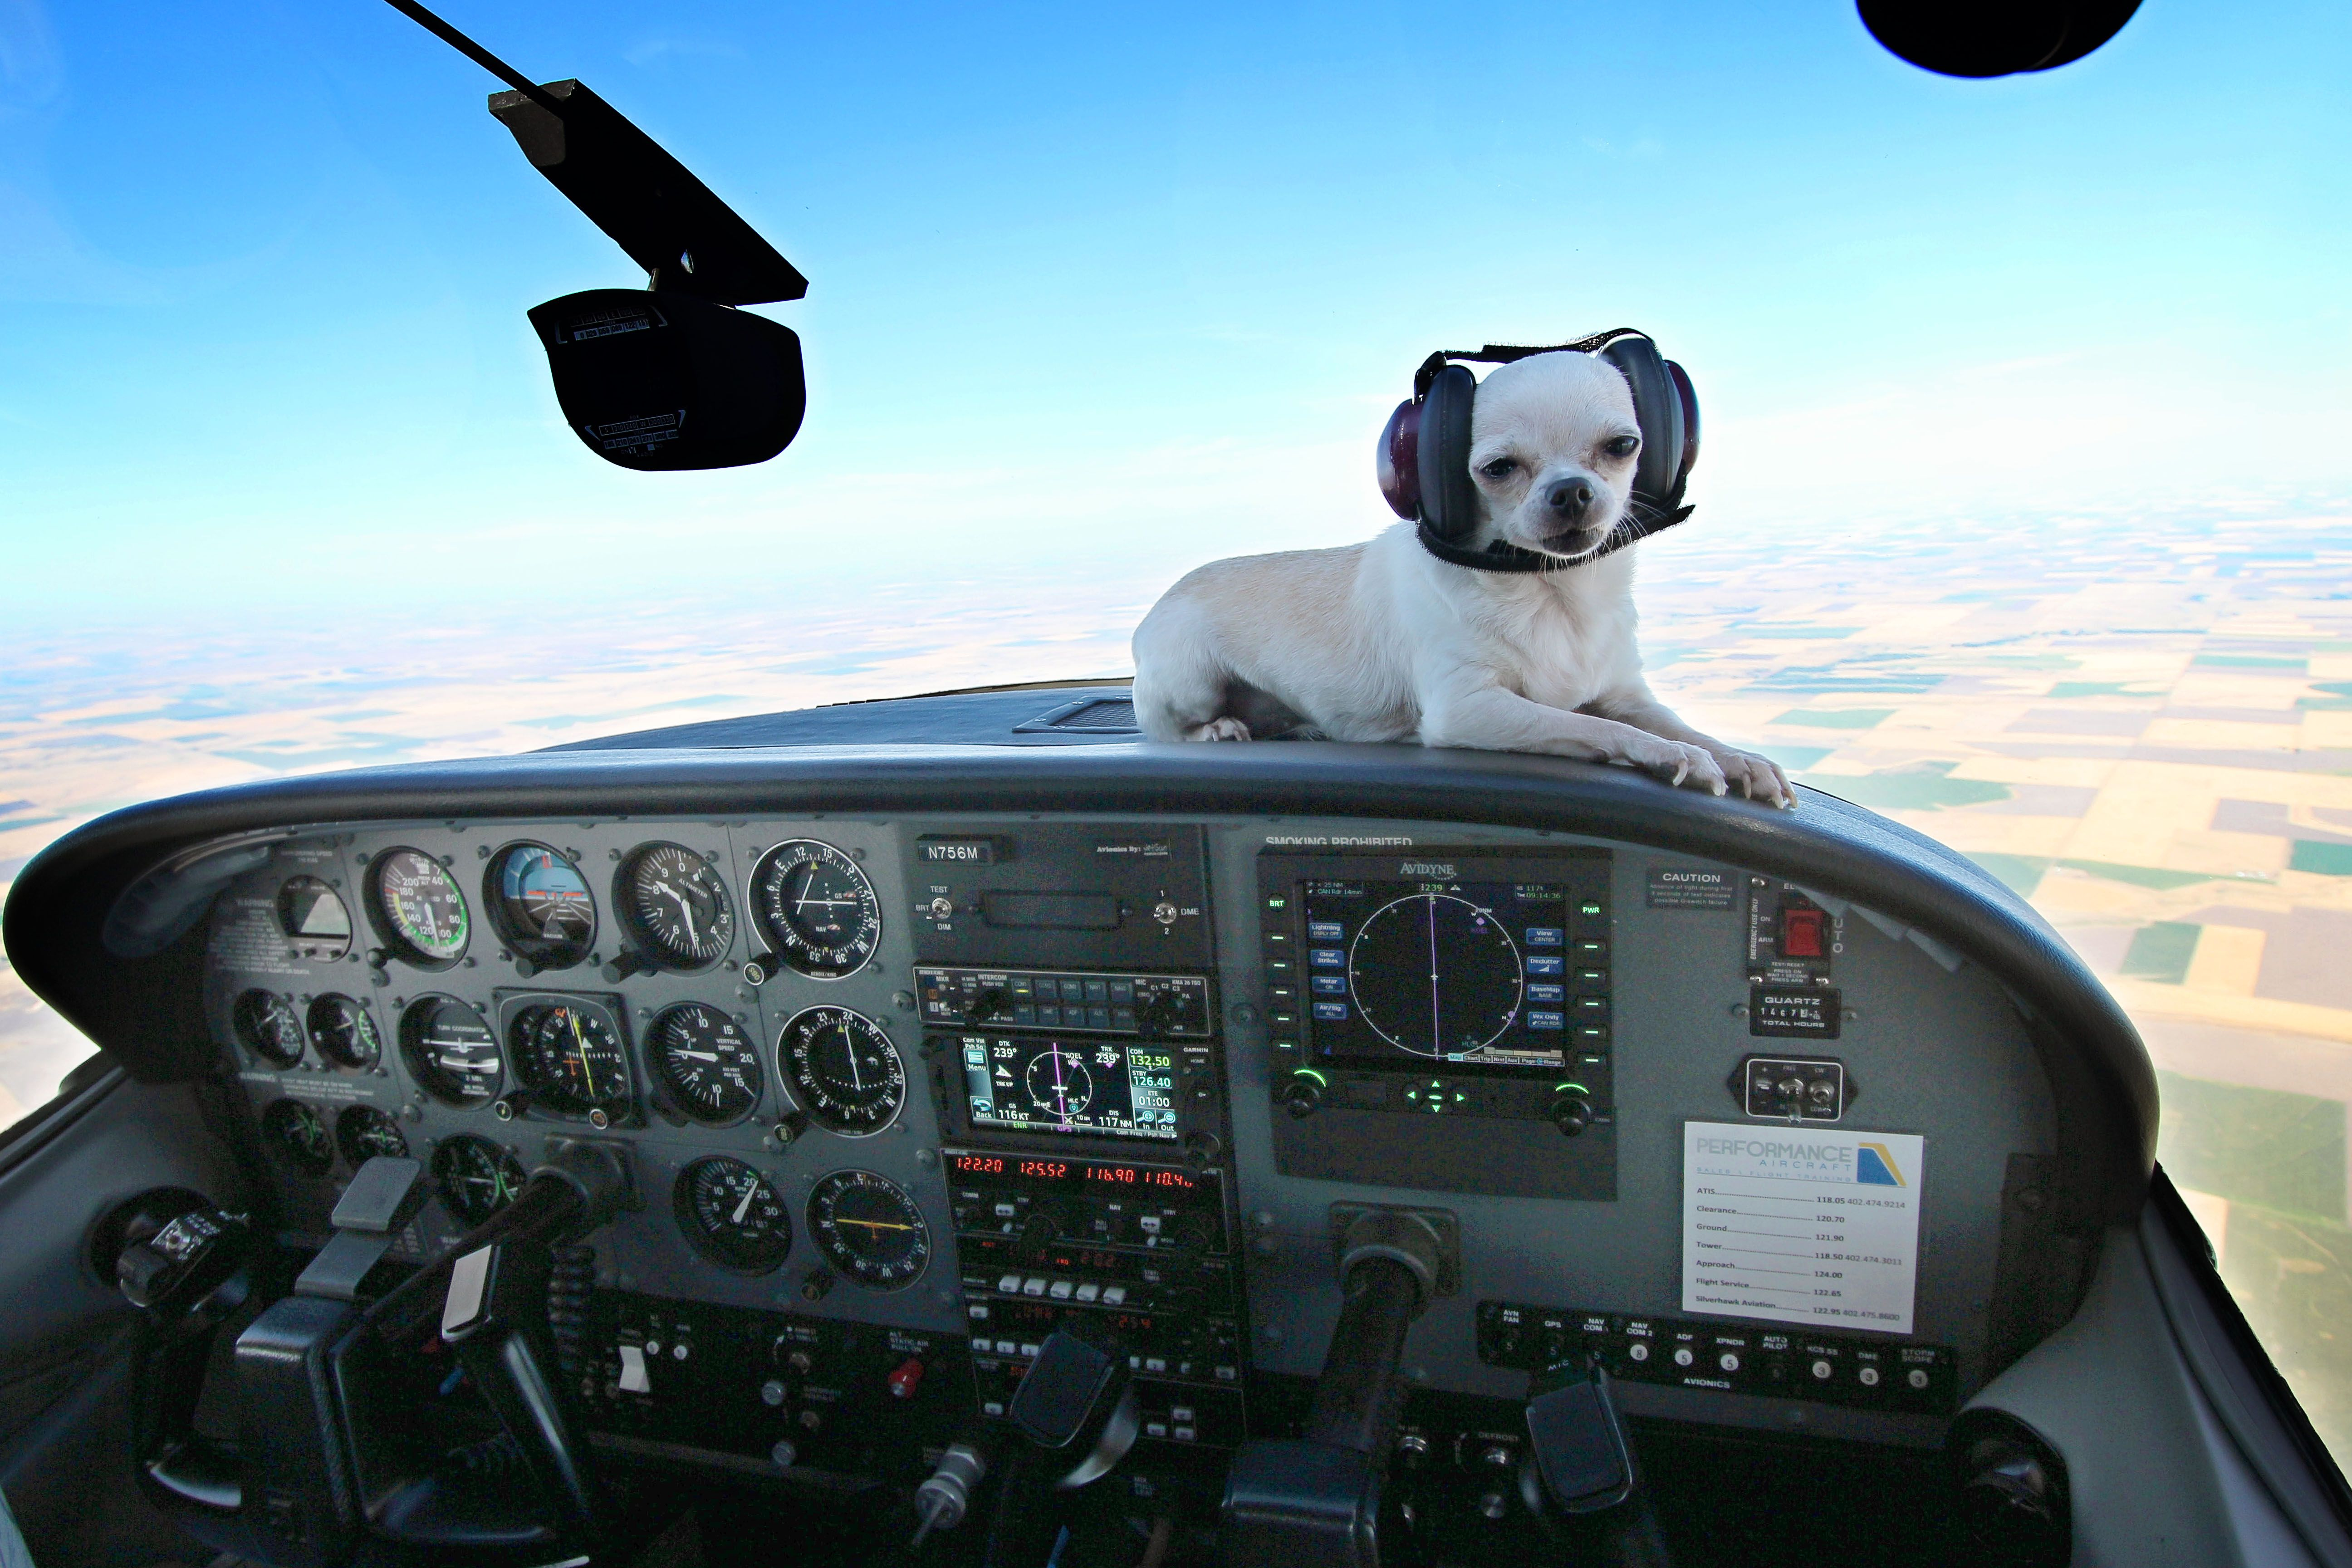 Aviator Chihuahua! Our 8 yr old, 4 lb sweetie flying in a